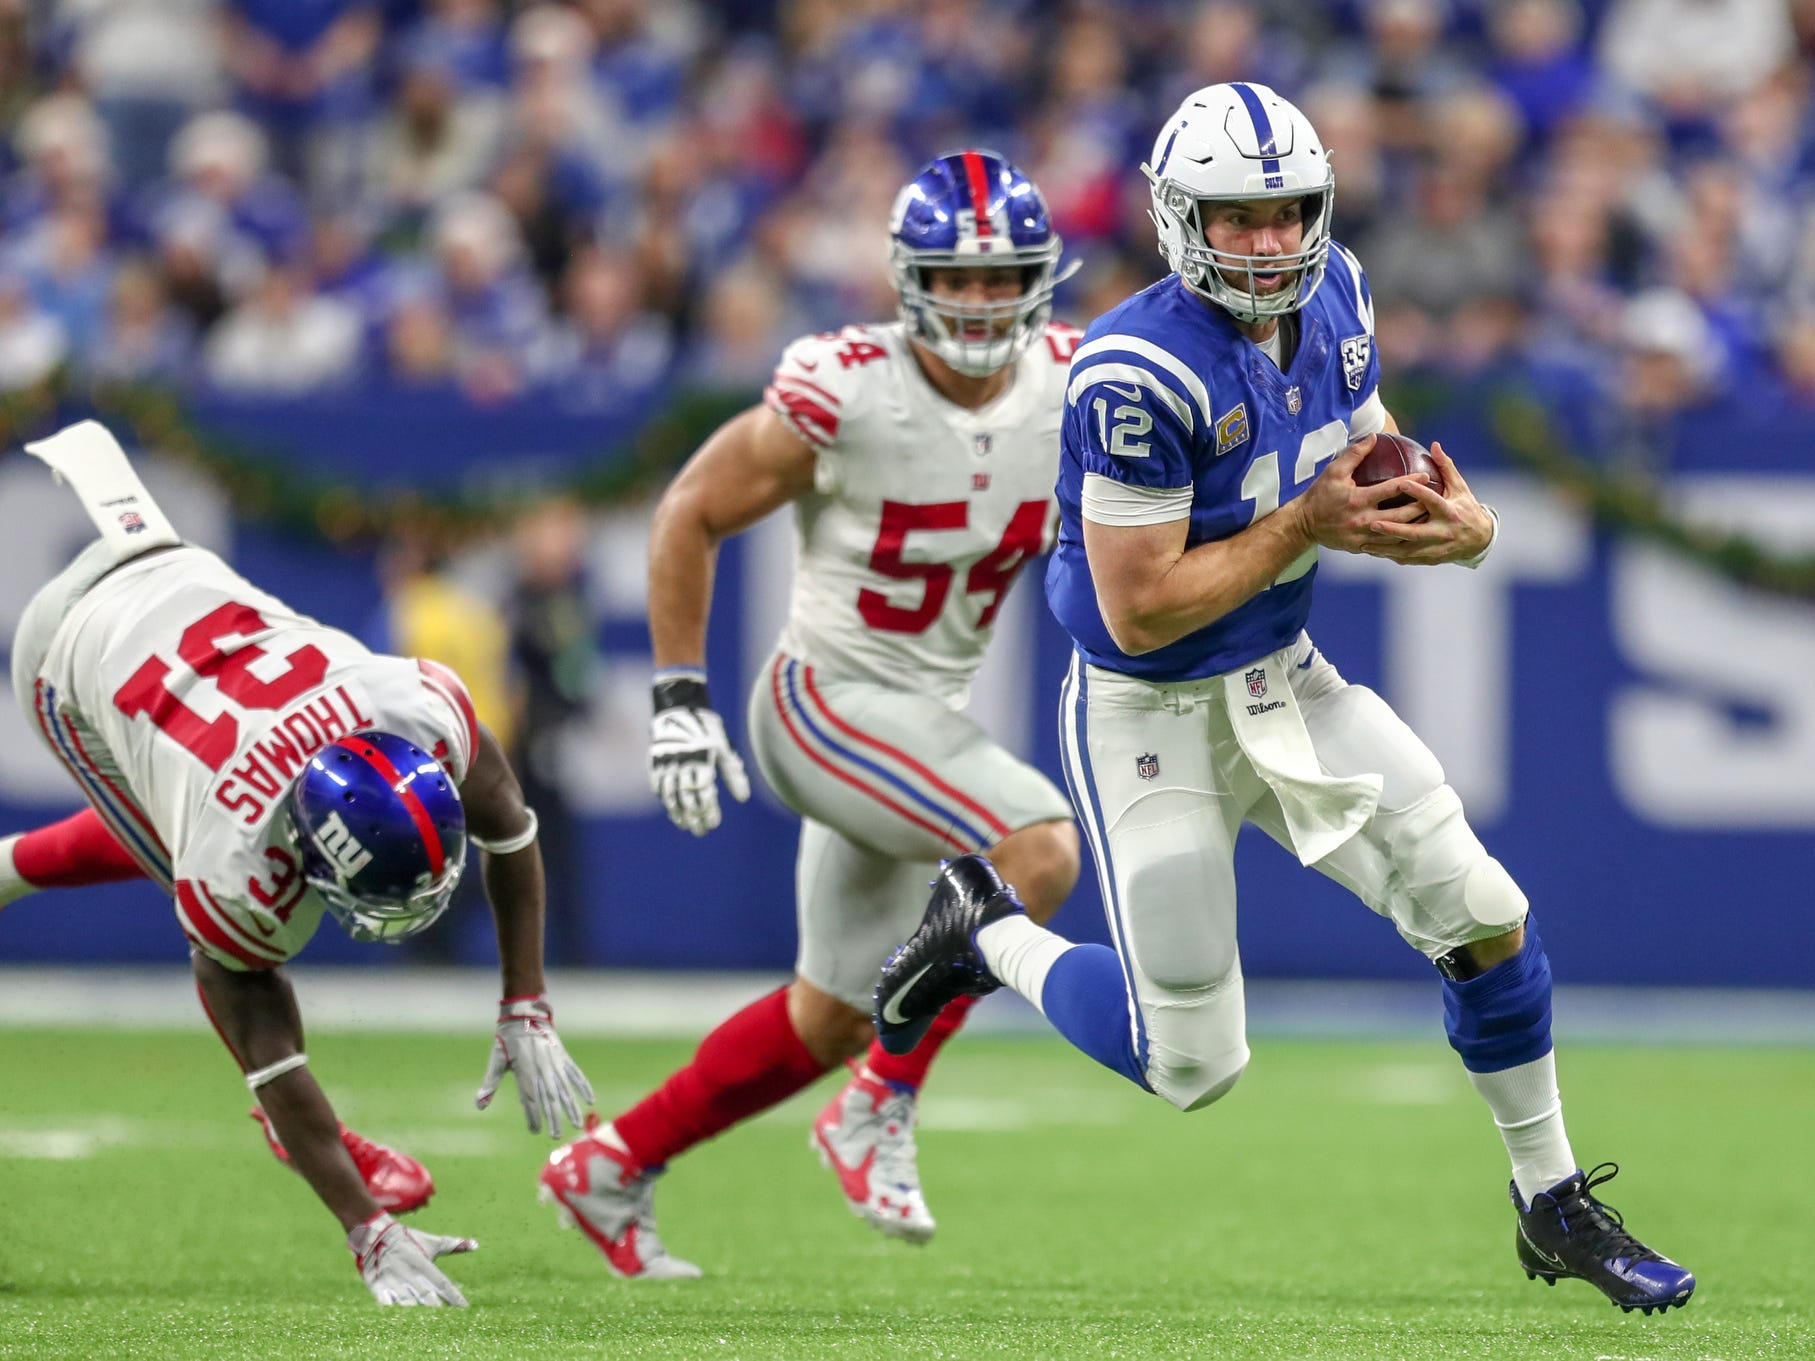 Indianapolis Colts quarterback Andrew Luck (12) takes off on a run for the first down against the New York Giants at Lucas Oil Stadium in Indianapolis on Sunday, Dec. 23, 2018.